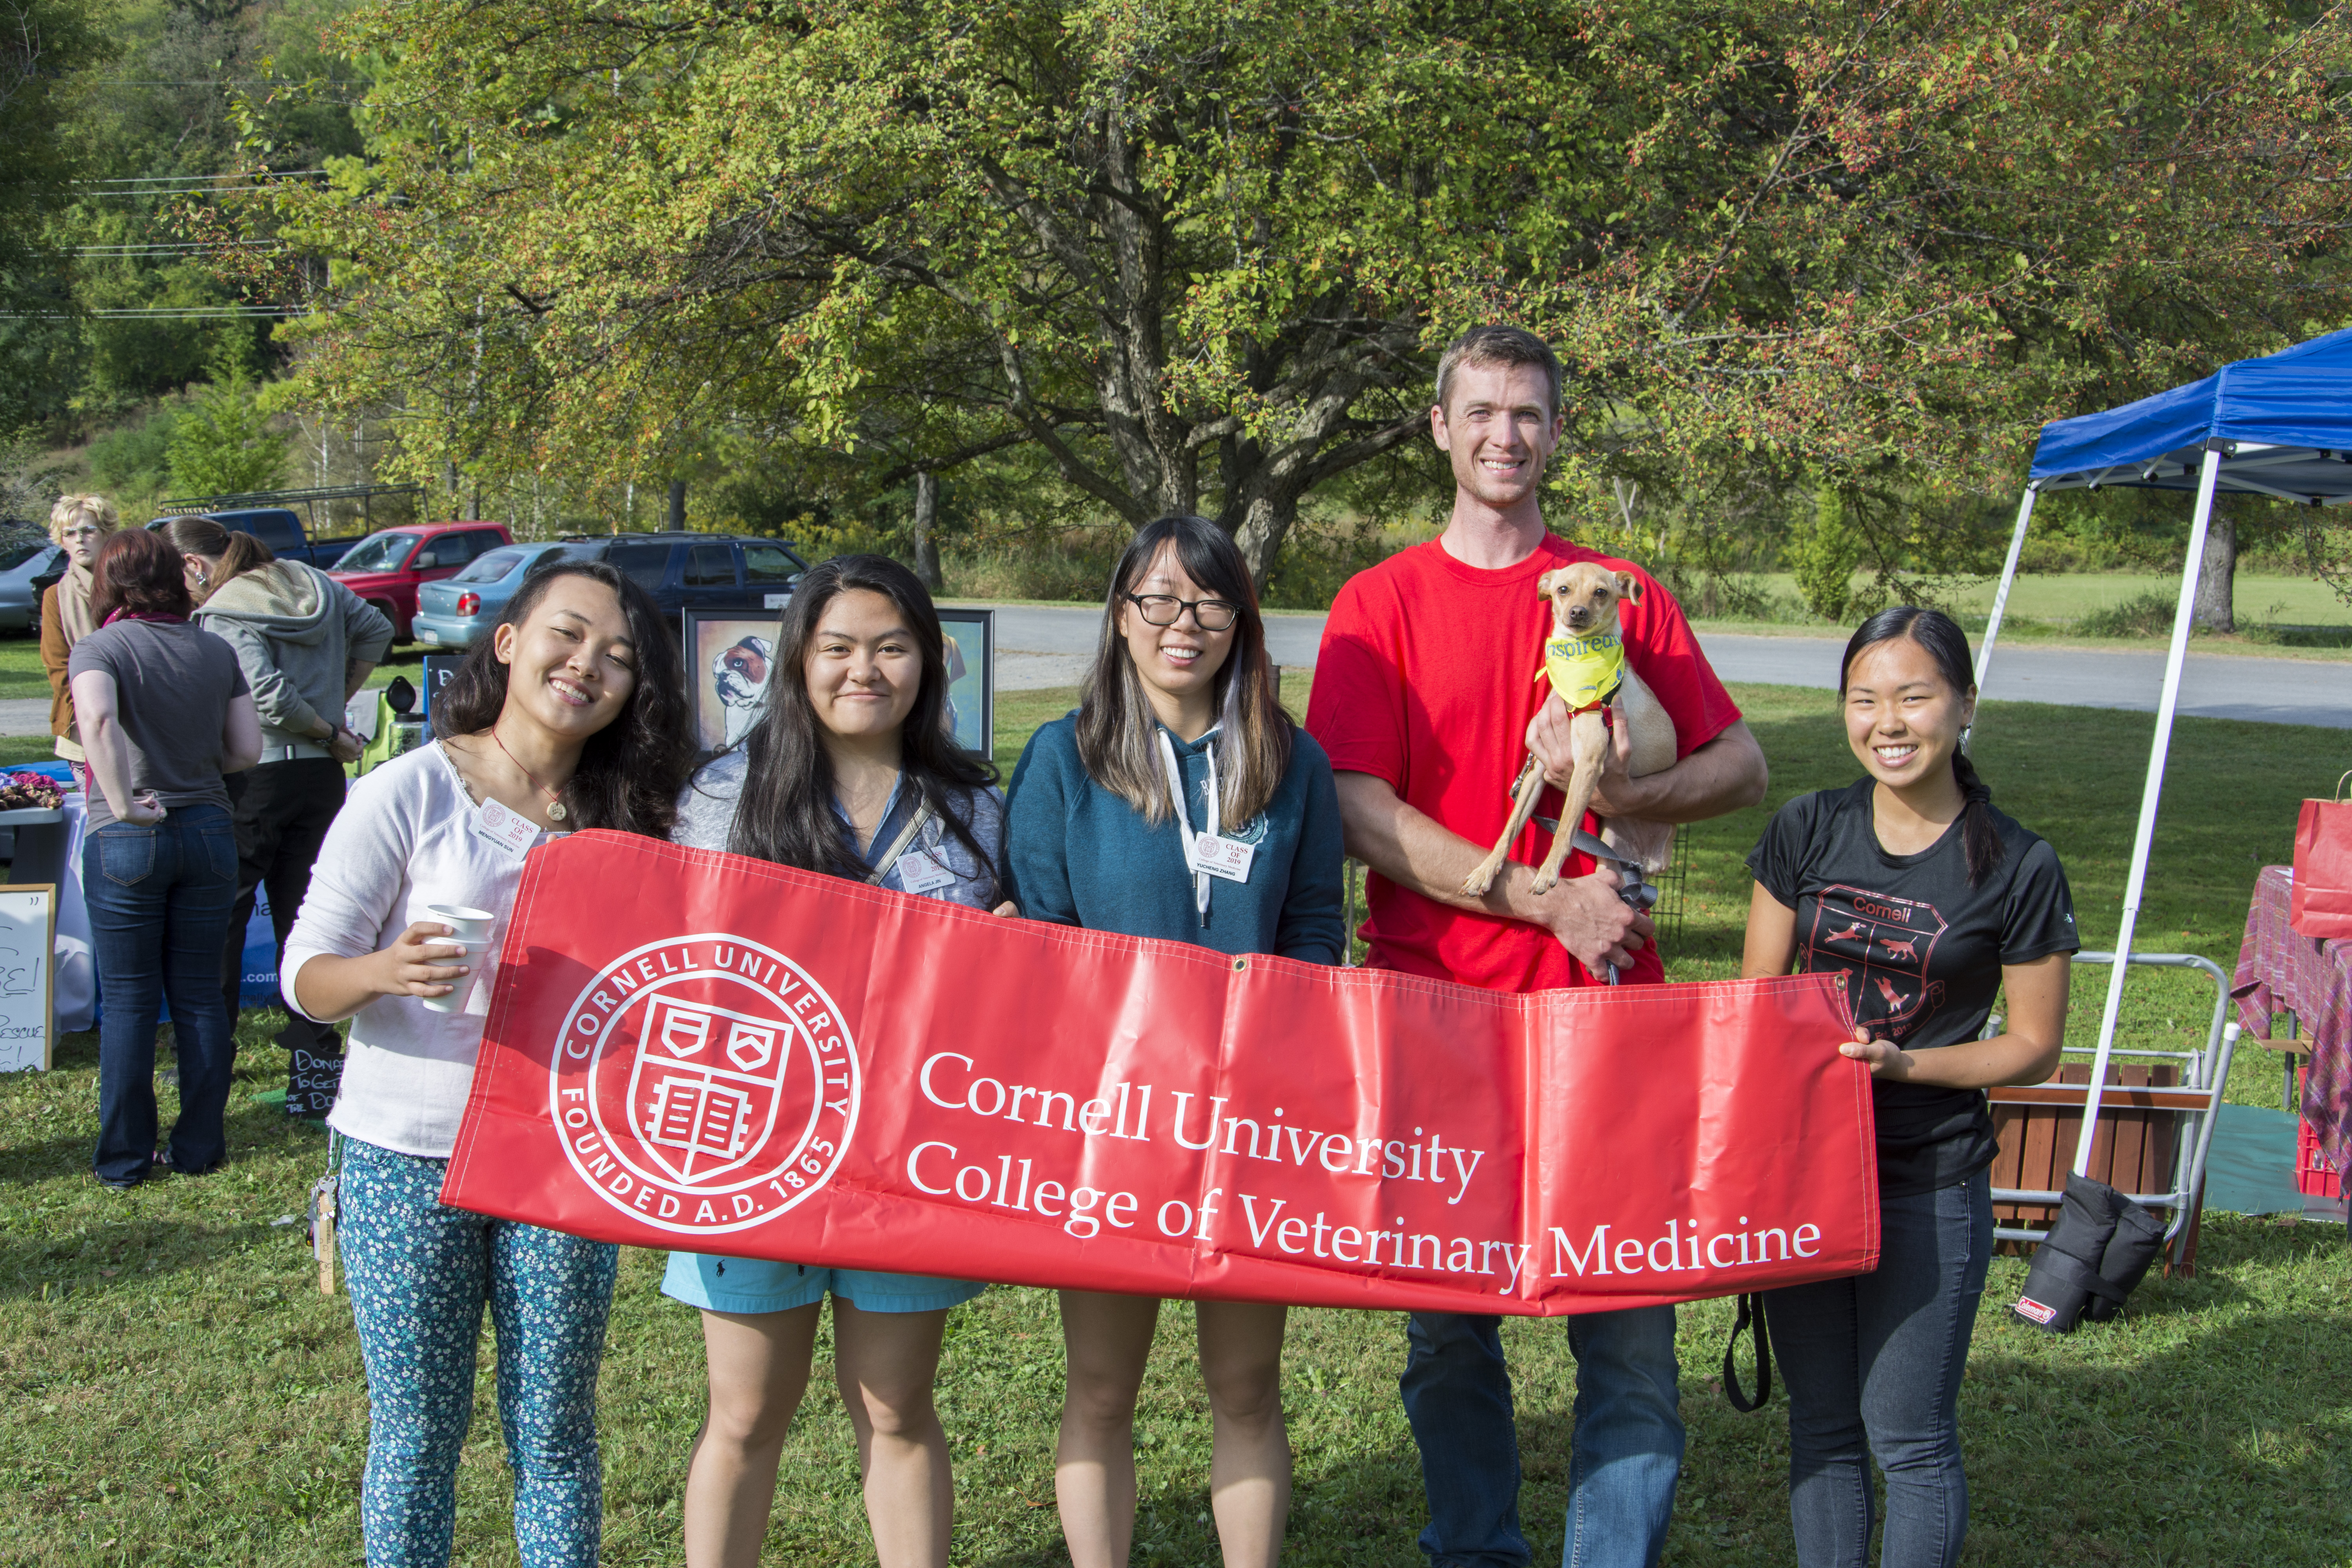 five veterinary students holding a CVM banner at a community event